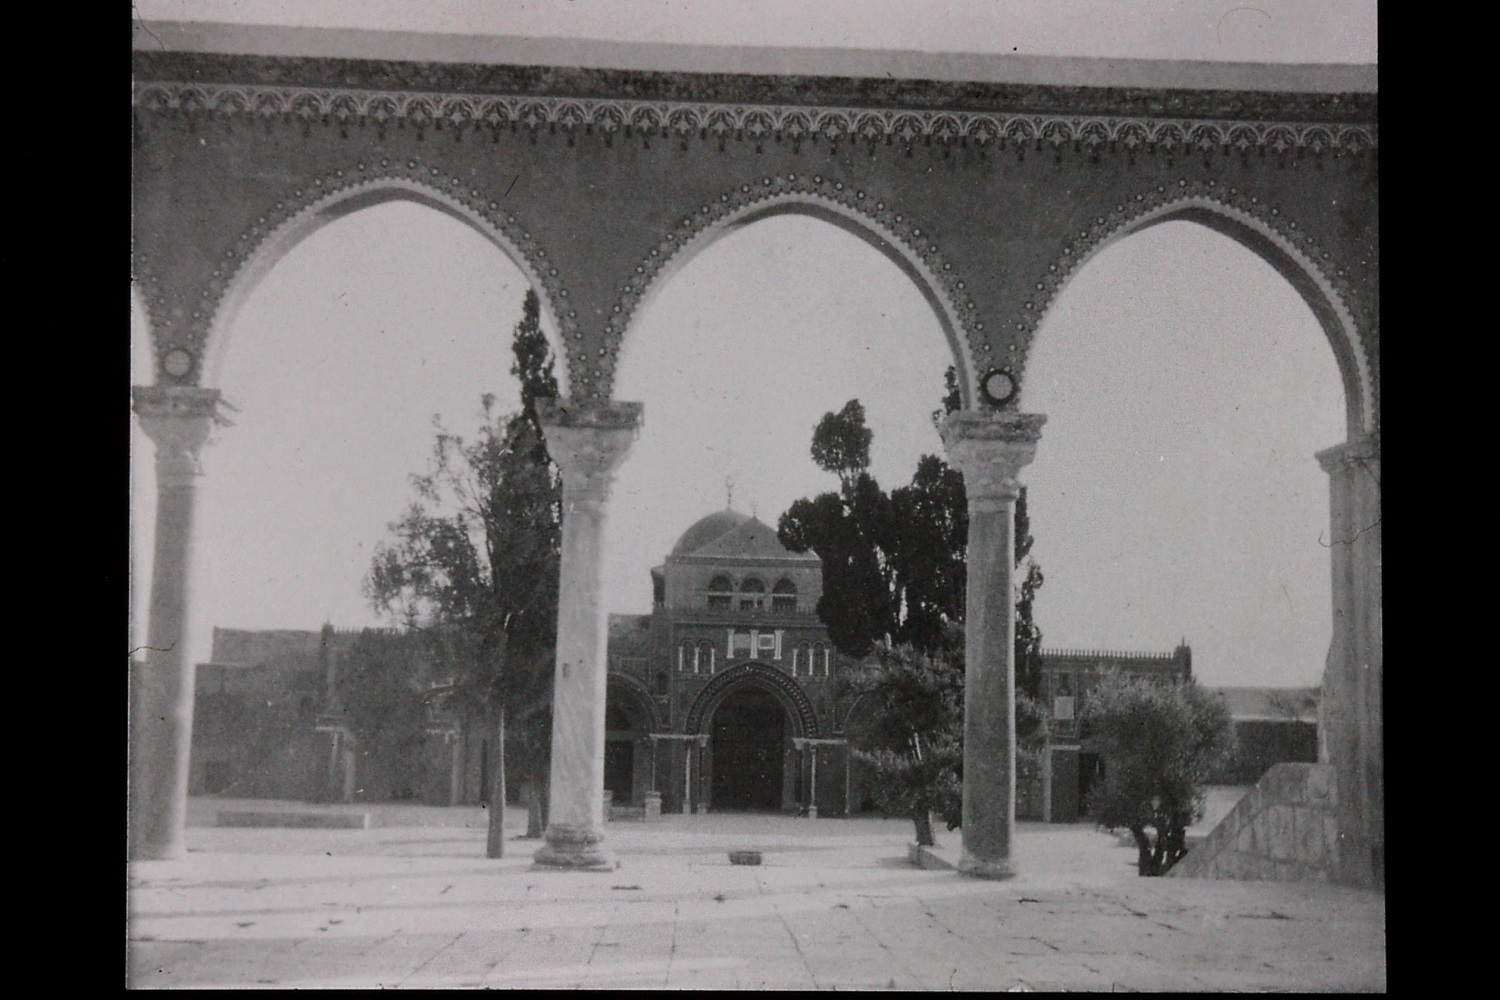 Gertrude Bell's photograph of Al Aqsa Mosque through archway. Catalogue number A51.